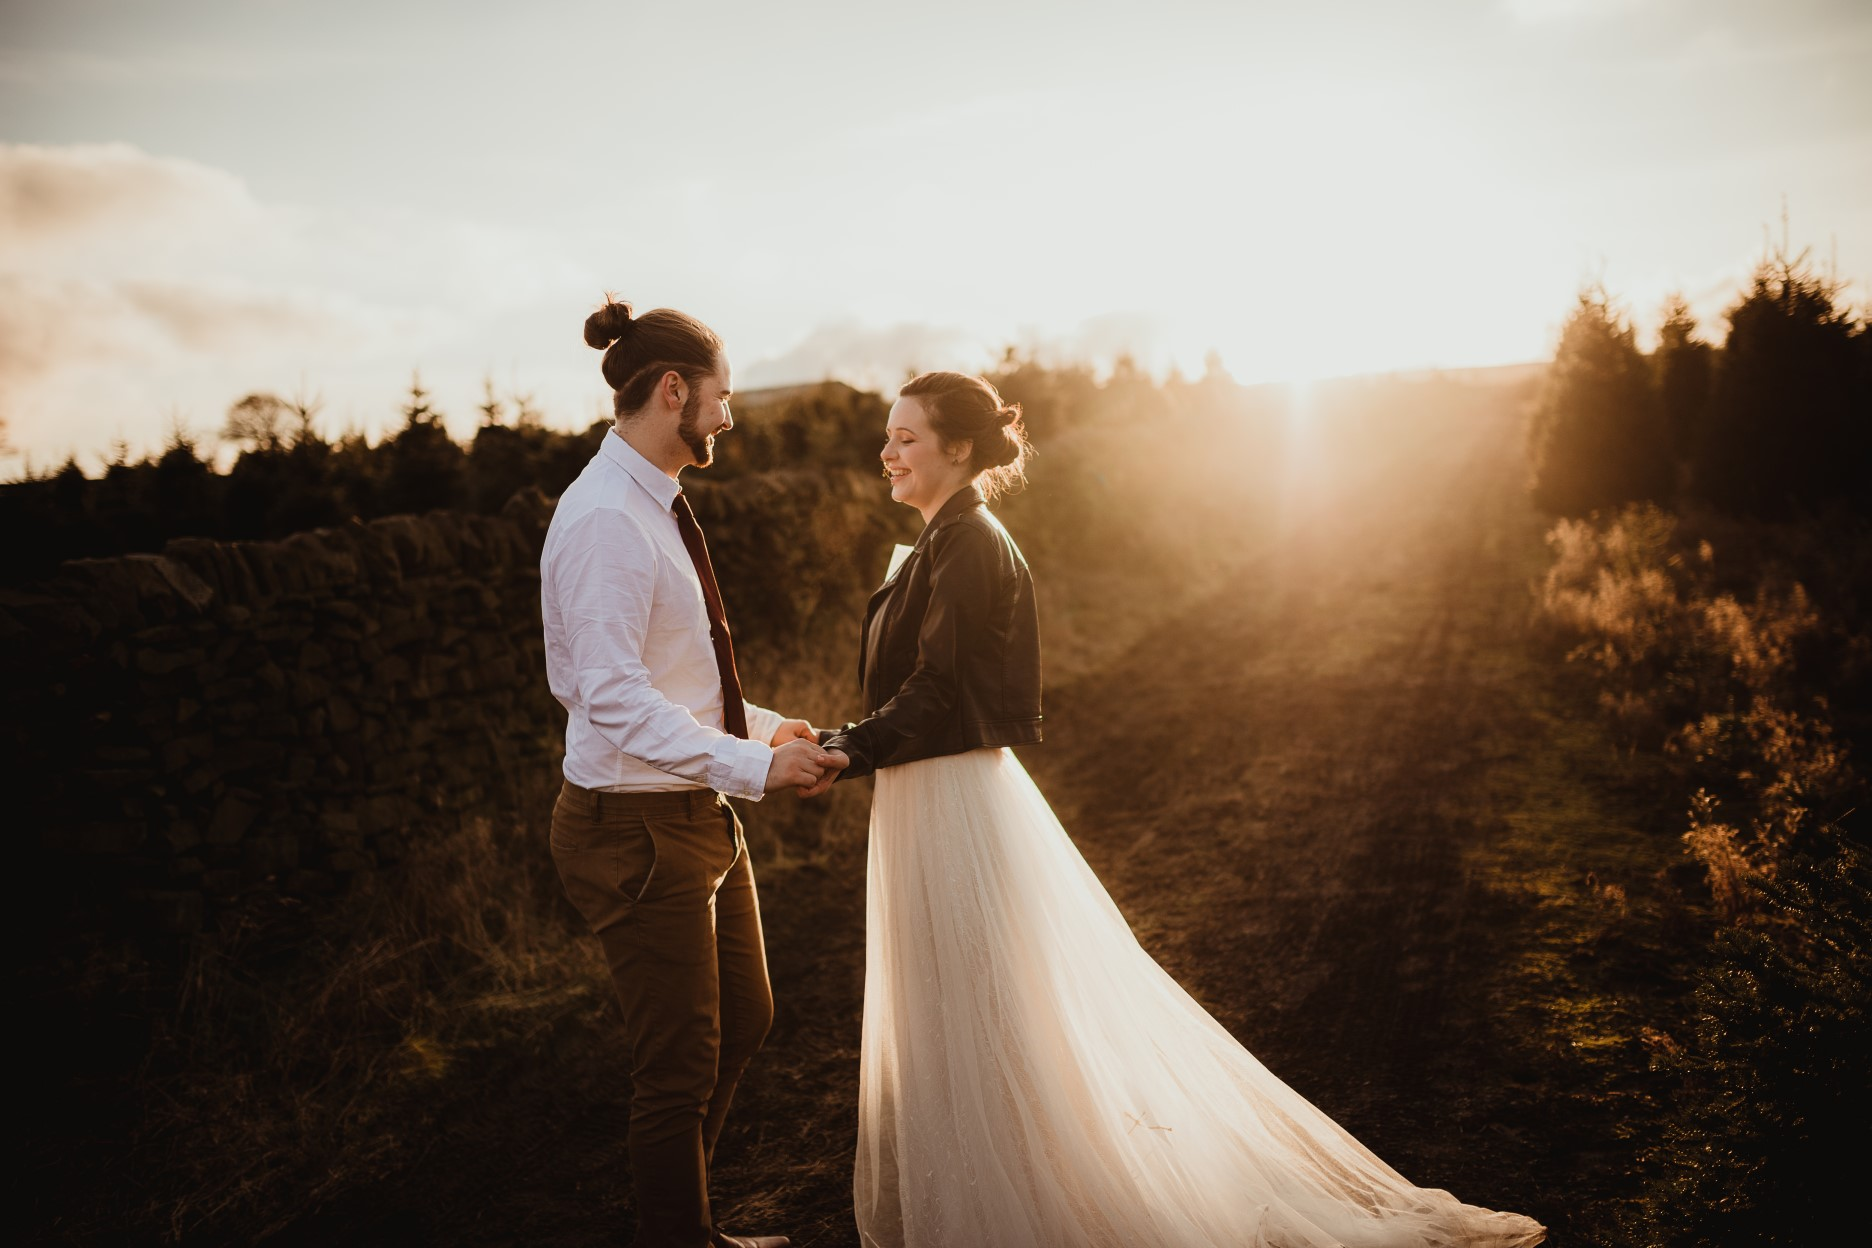 christmas elopement wedding- alternative wedding- christmas wedding- fly on the wall photography- wedding at a christmas tree farm- artistic wedding photography